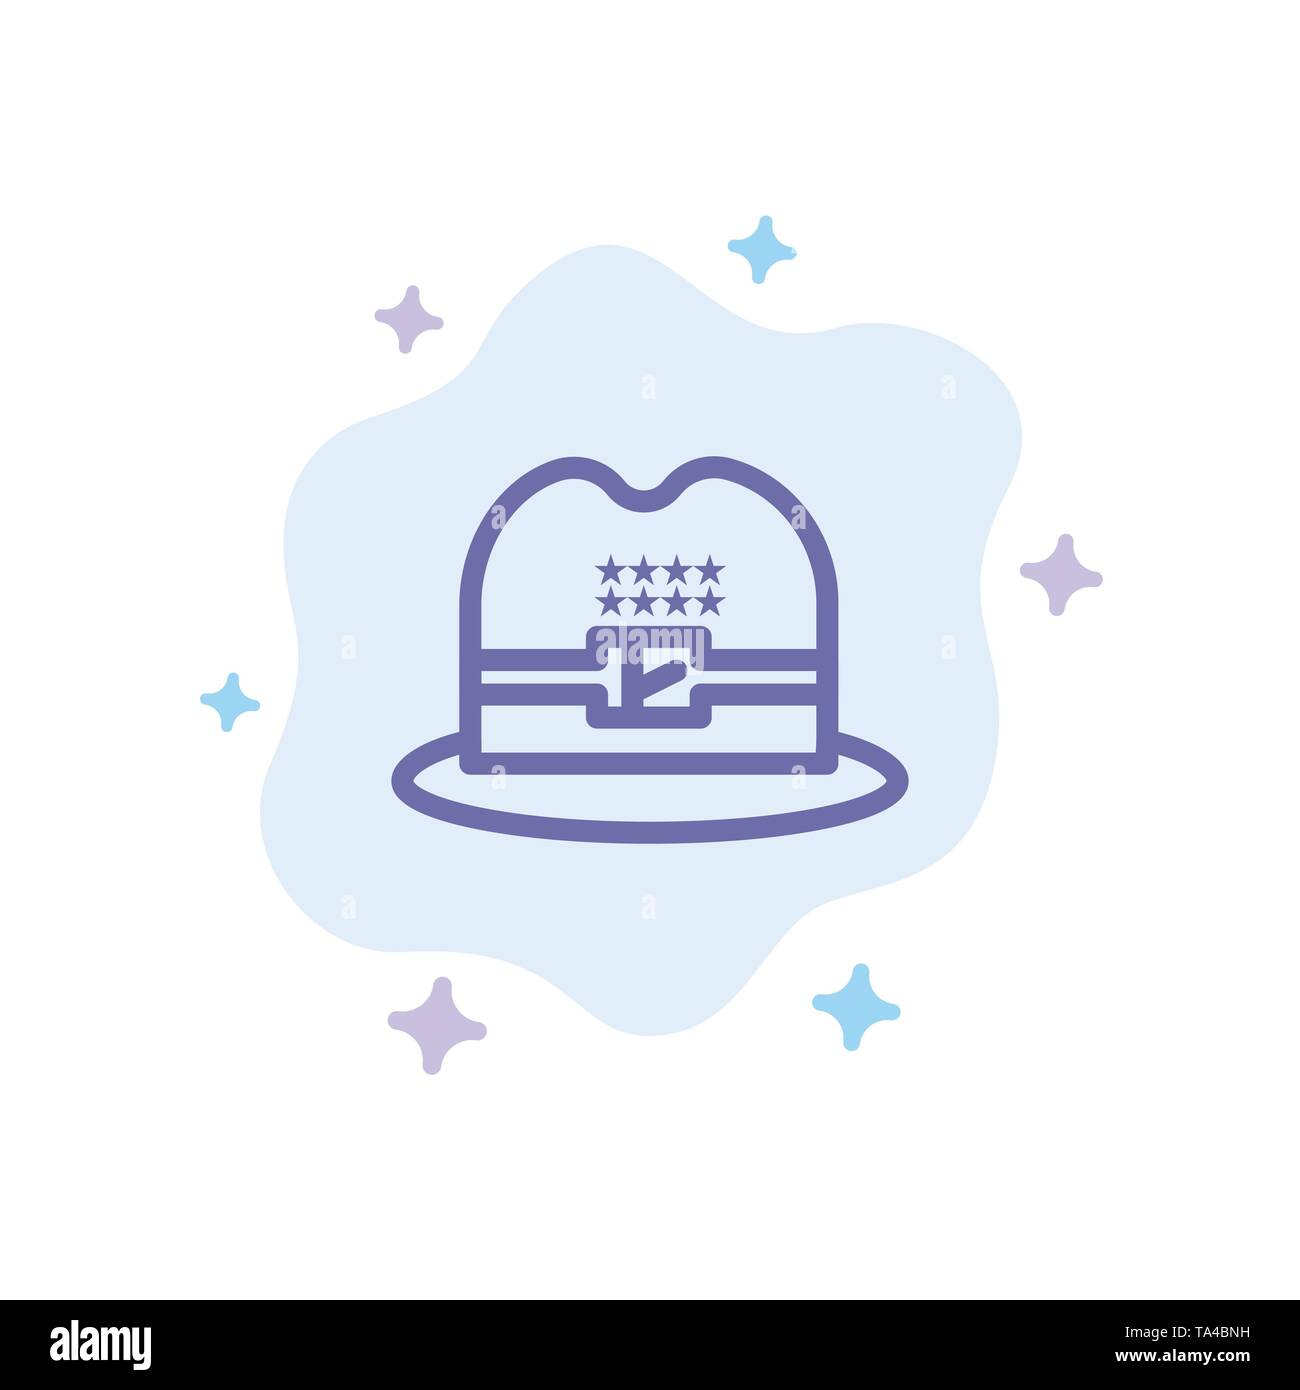 Hat, Cap, American Blue Icon on Abstract Cloud Background - Stock Image